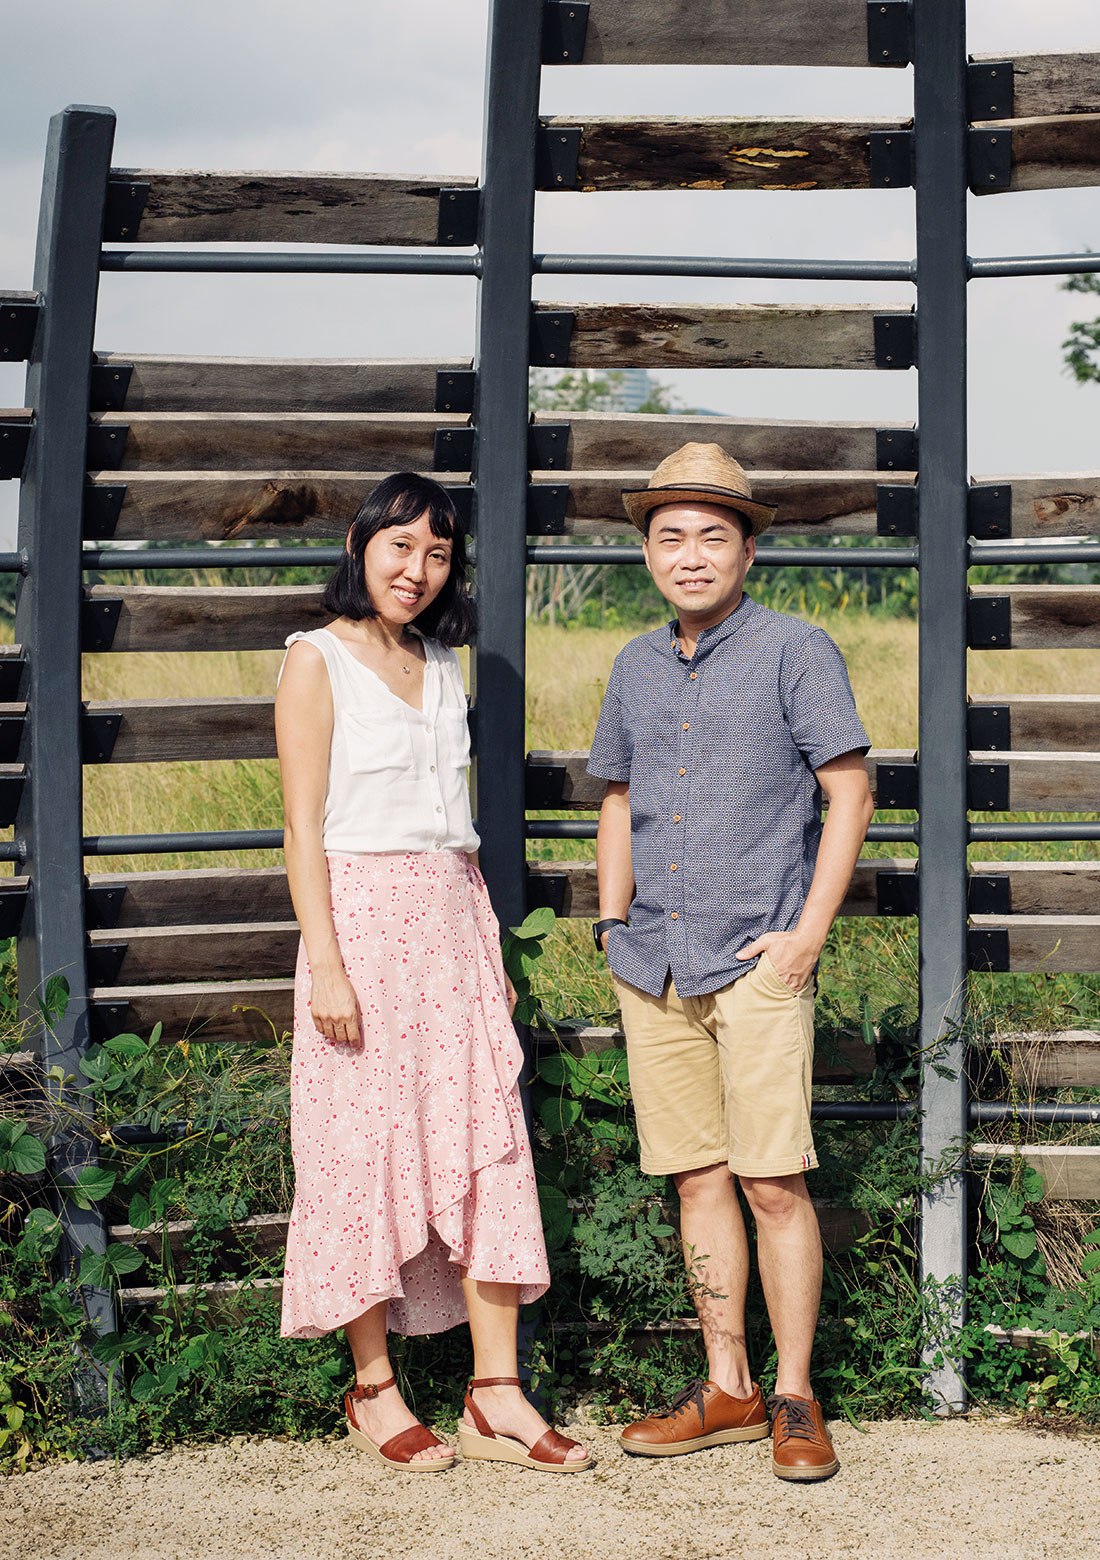 Husband-and-wife team Dr Chong Keng Hua and Kang Fong Ing seek out ways to activate often-overlooked spaces with the intention of building and enriching communities.